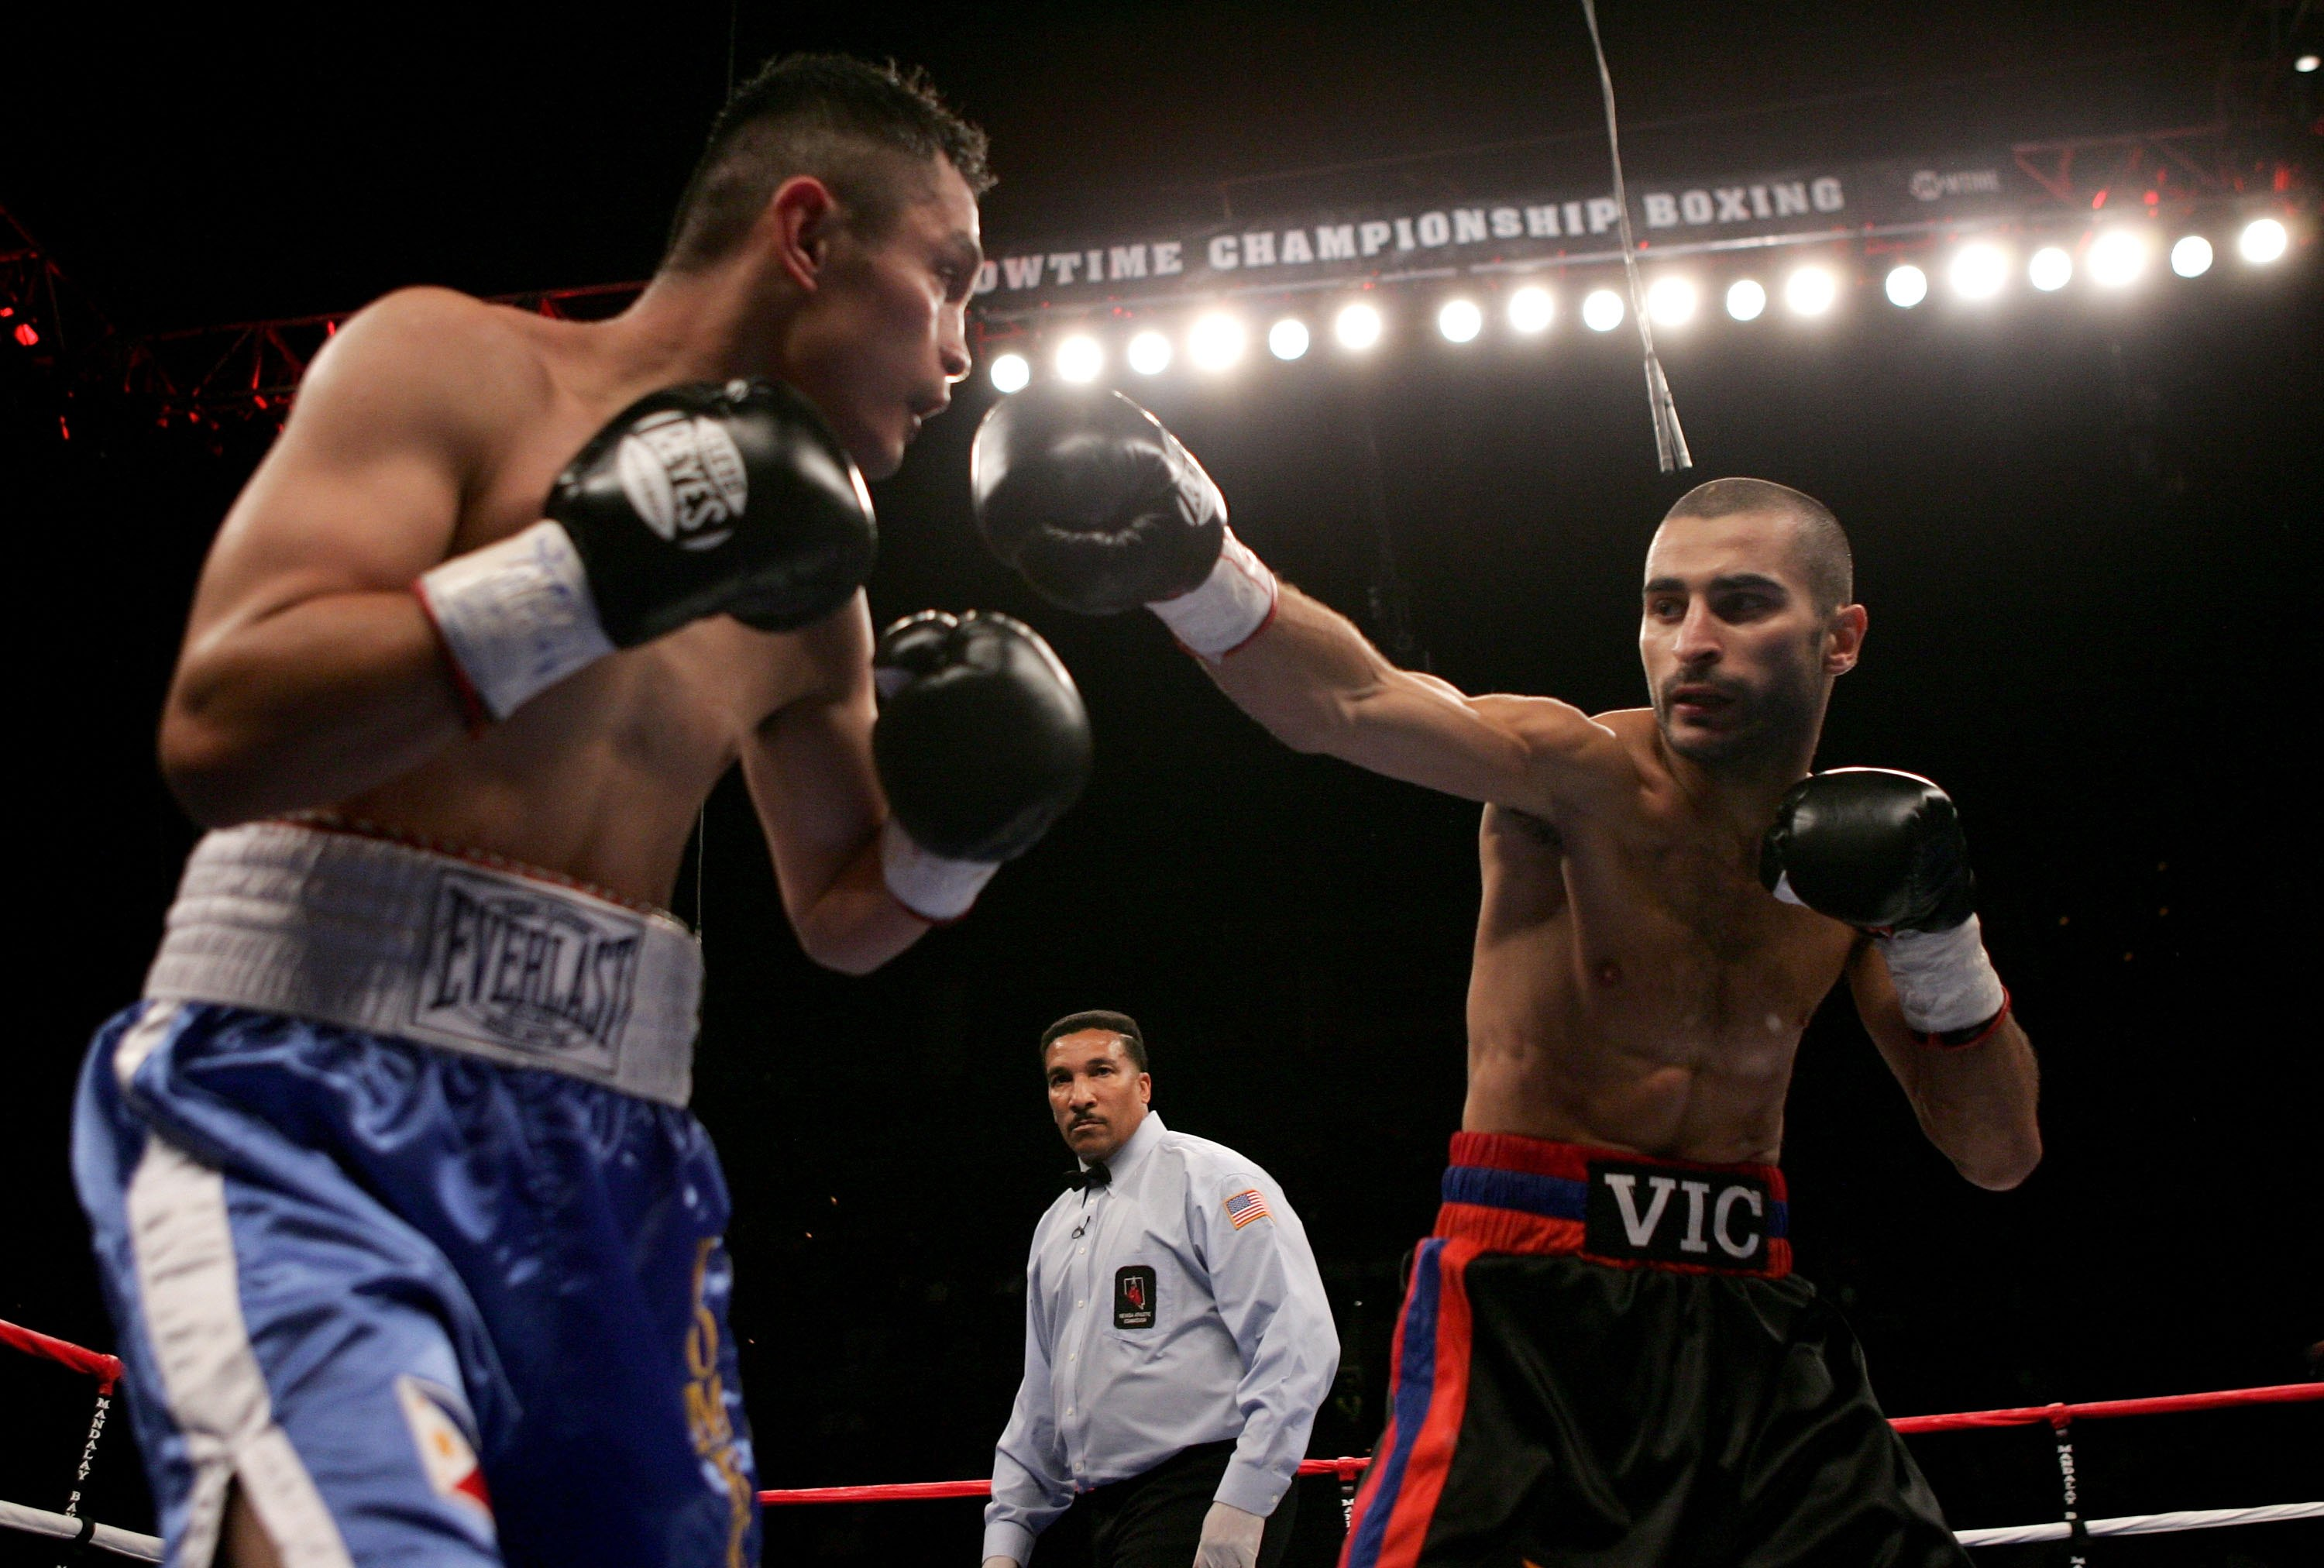 LAS VEGAS - OCTOBER 07:  Vic Darchinyan lands a punch against Glenn Donaire during the IBF/IBO Flywieght Championship bout on October 7, 2006 at the Mandalay Bay Event Center in Las Vegas, Nevada. Darchinyan won with a 6th round TKO.  (Photo by Jonathan F